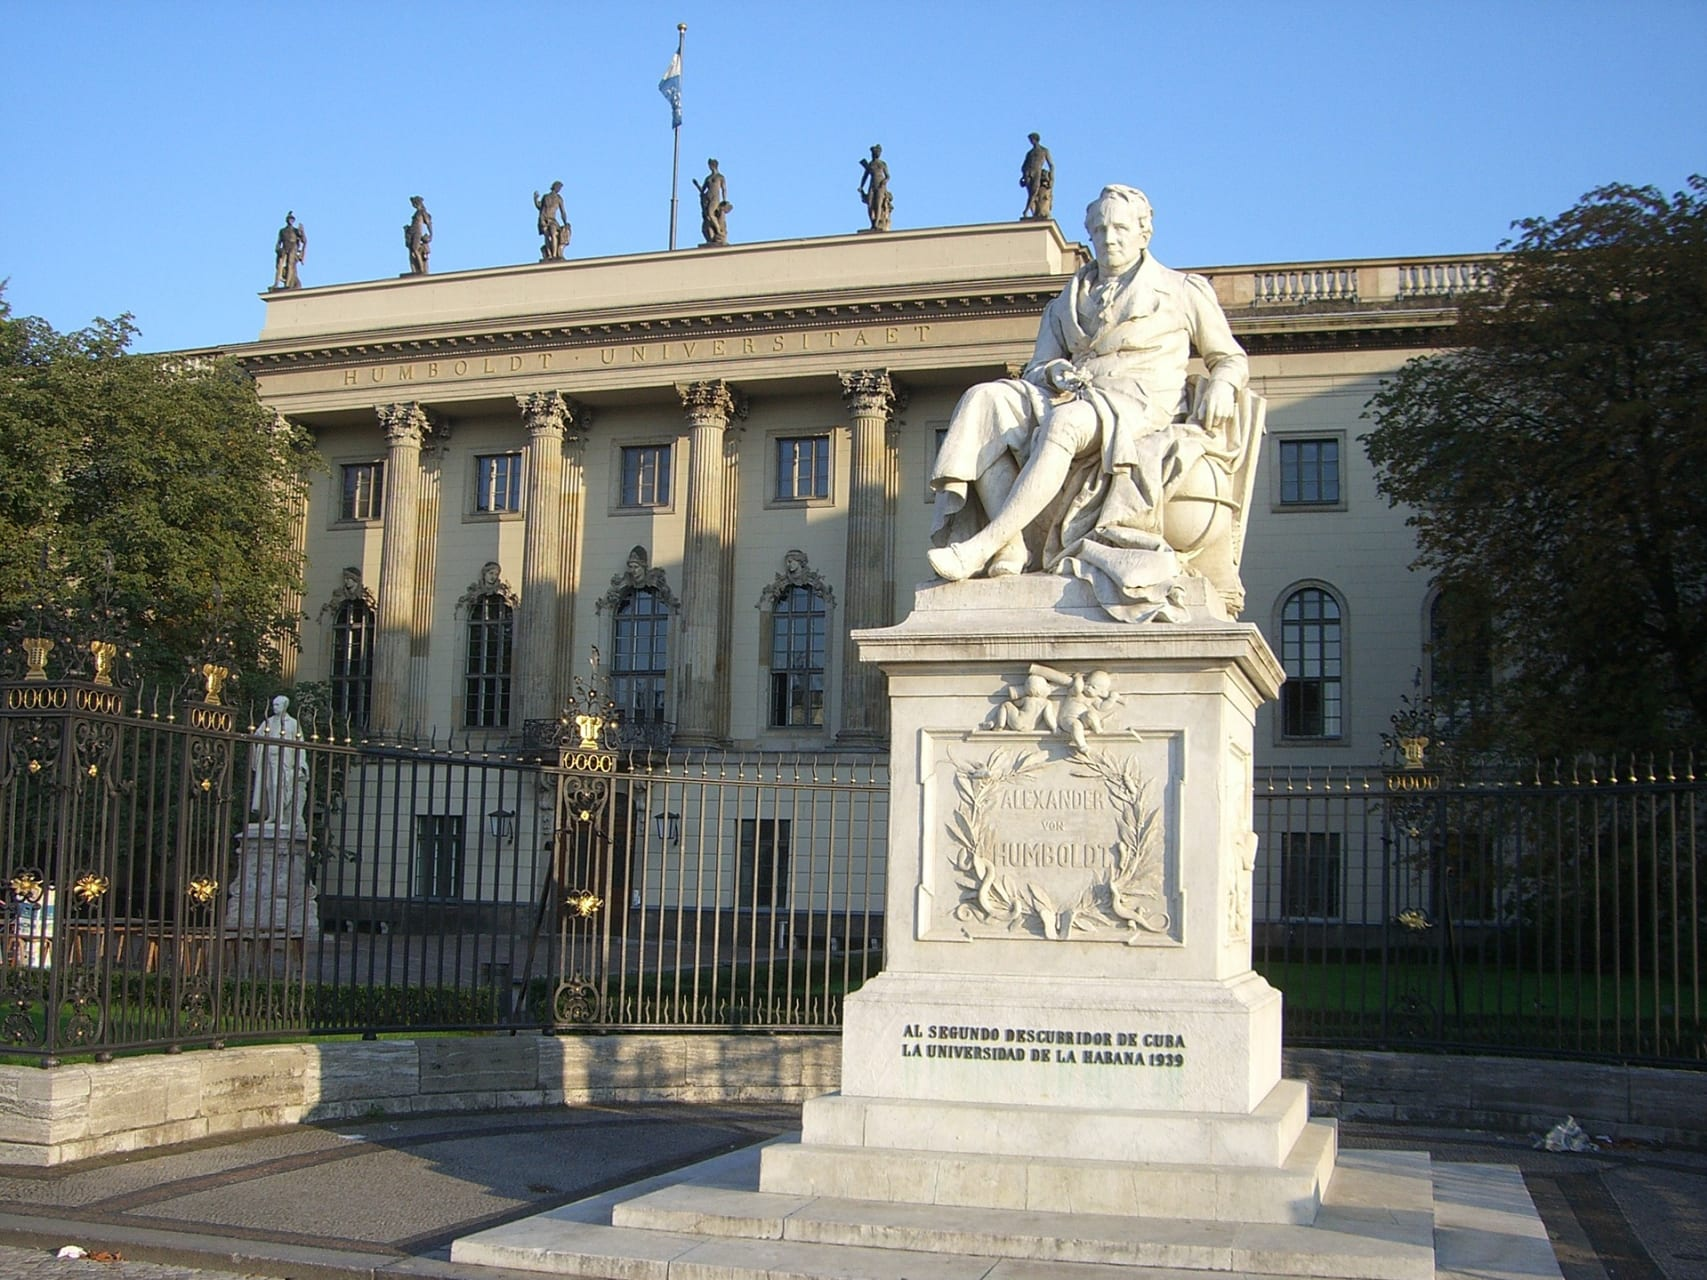 Berlin - From Gendarmenmarkt to Bebelplatz: From Prussia's Glory to the Shame of a Nation